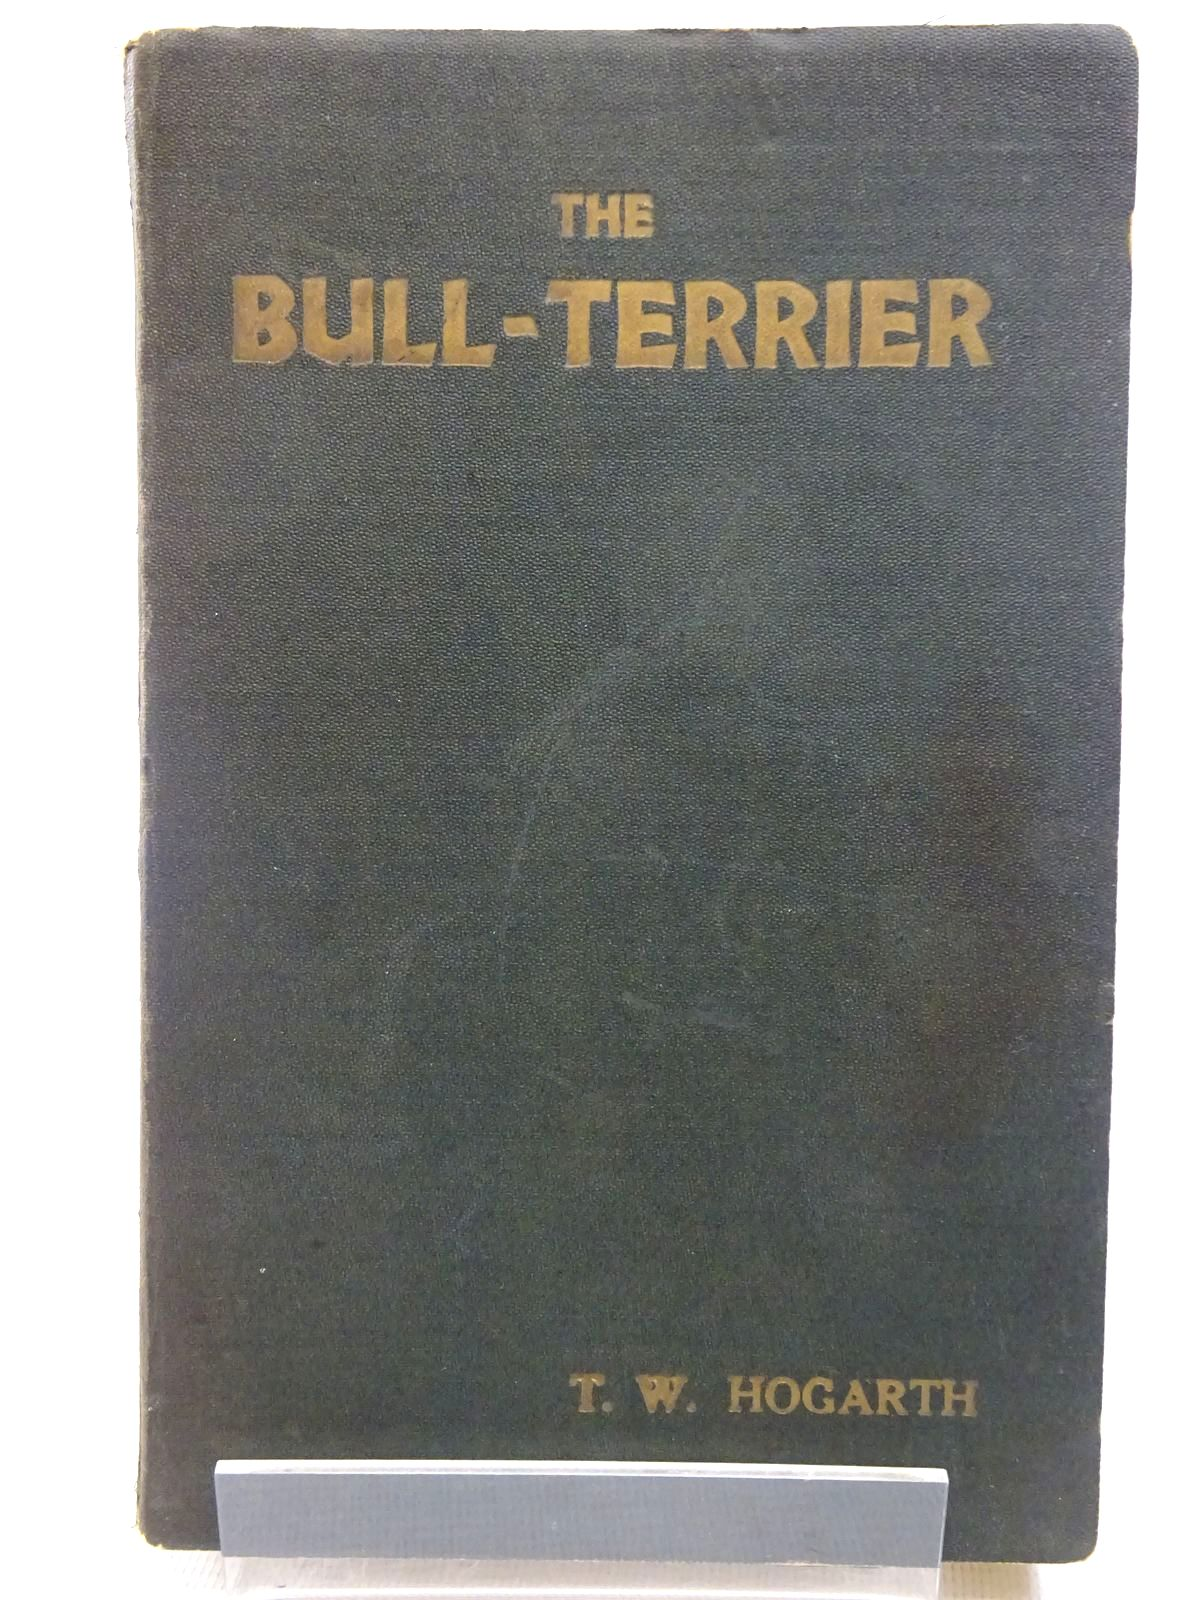 Photo of THE BULL-TERRIER written by Hogarth, T.W. published by Our Dogs Publishing Co. Ltd. (STOCK CODE: 2128687)  for sale by Stella & Rose's Books